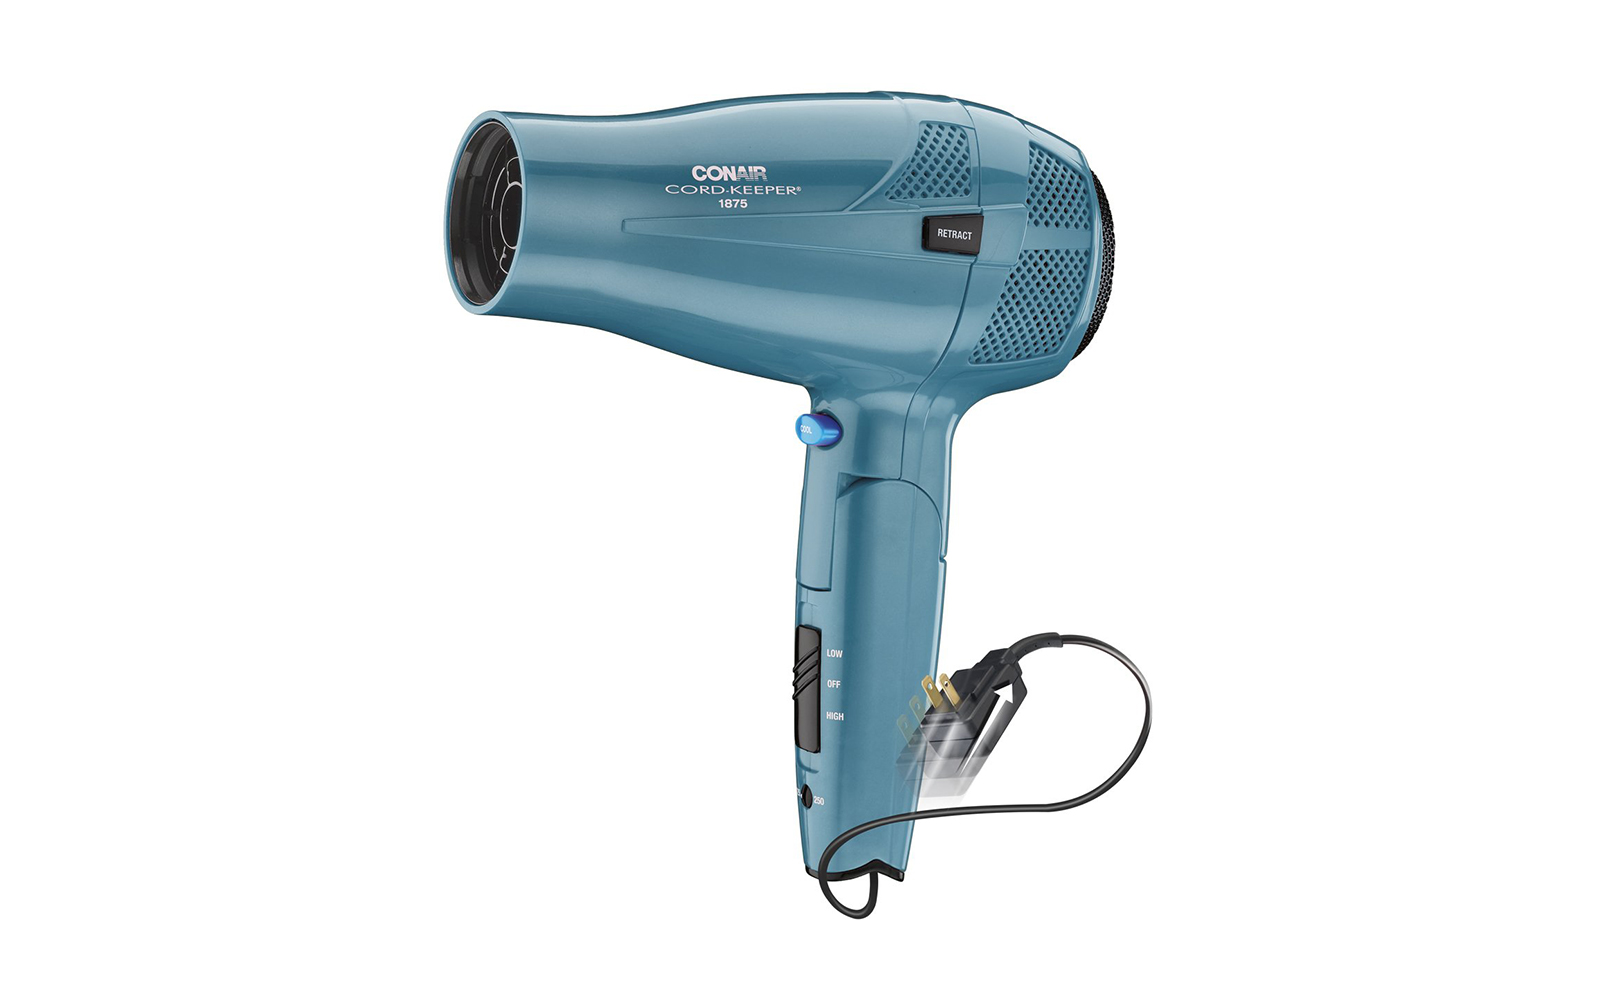 Best Travel Hair Dryer With Retractable Cord: Conair Keeper Travel Hair Dryer